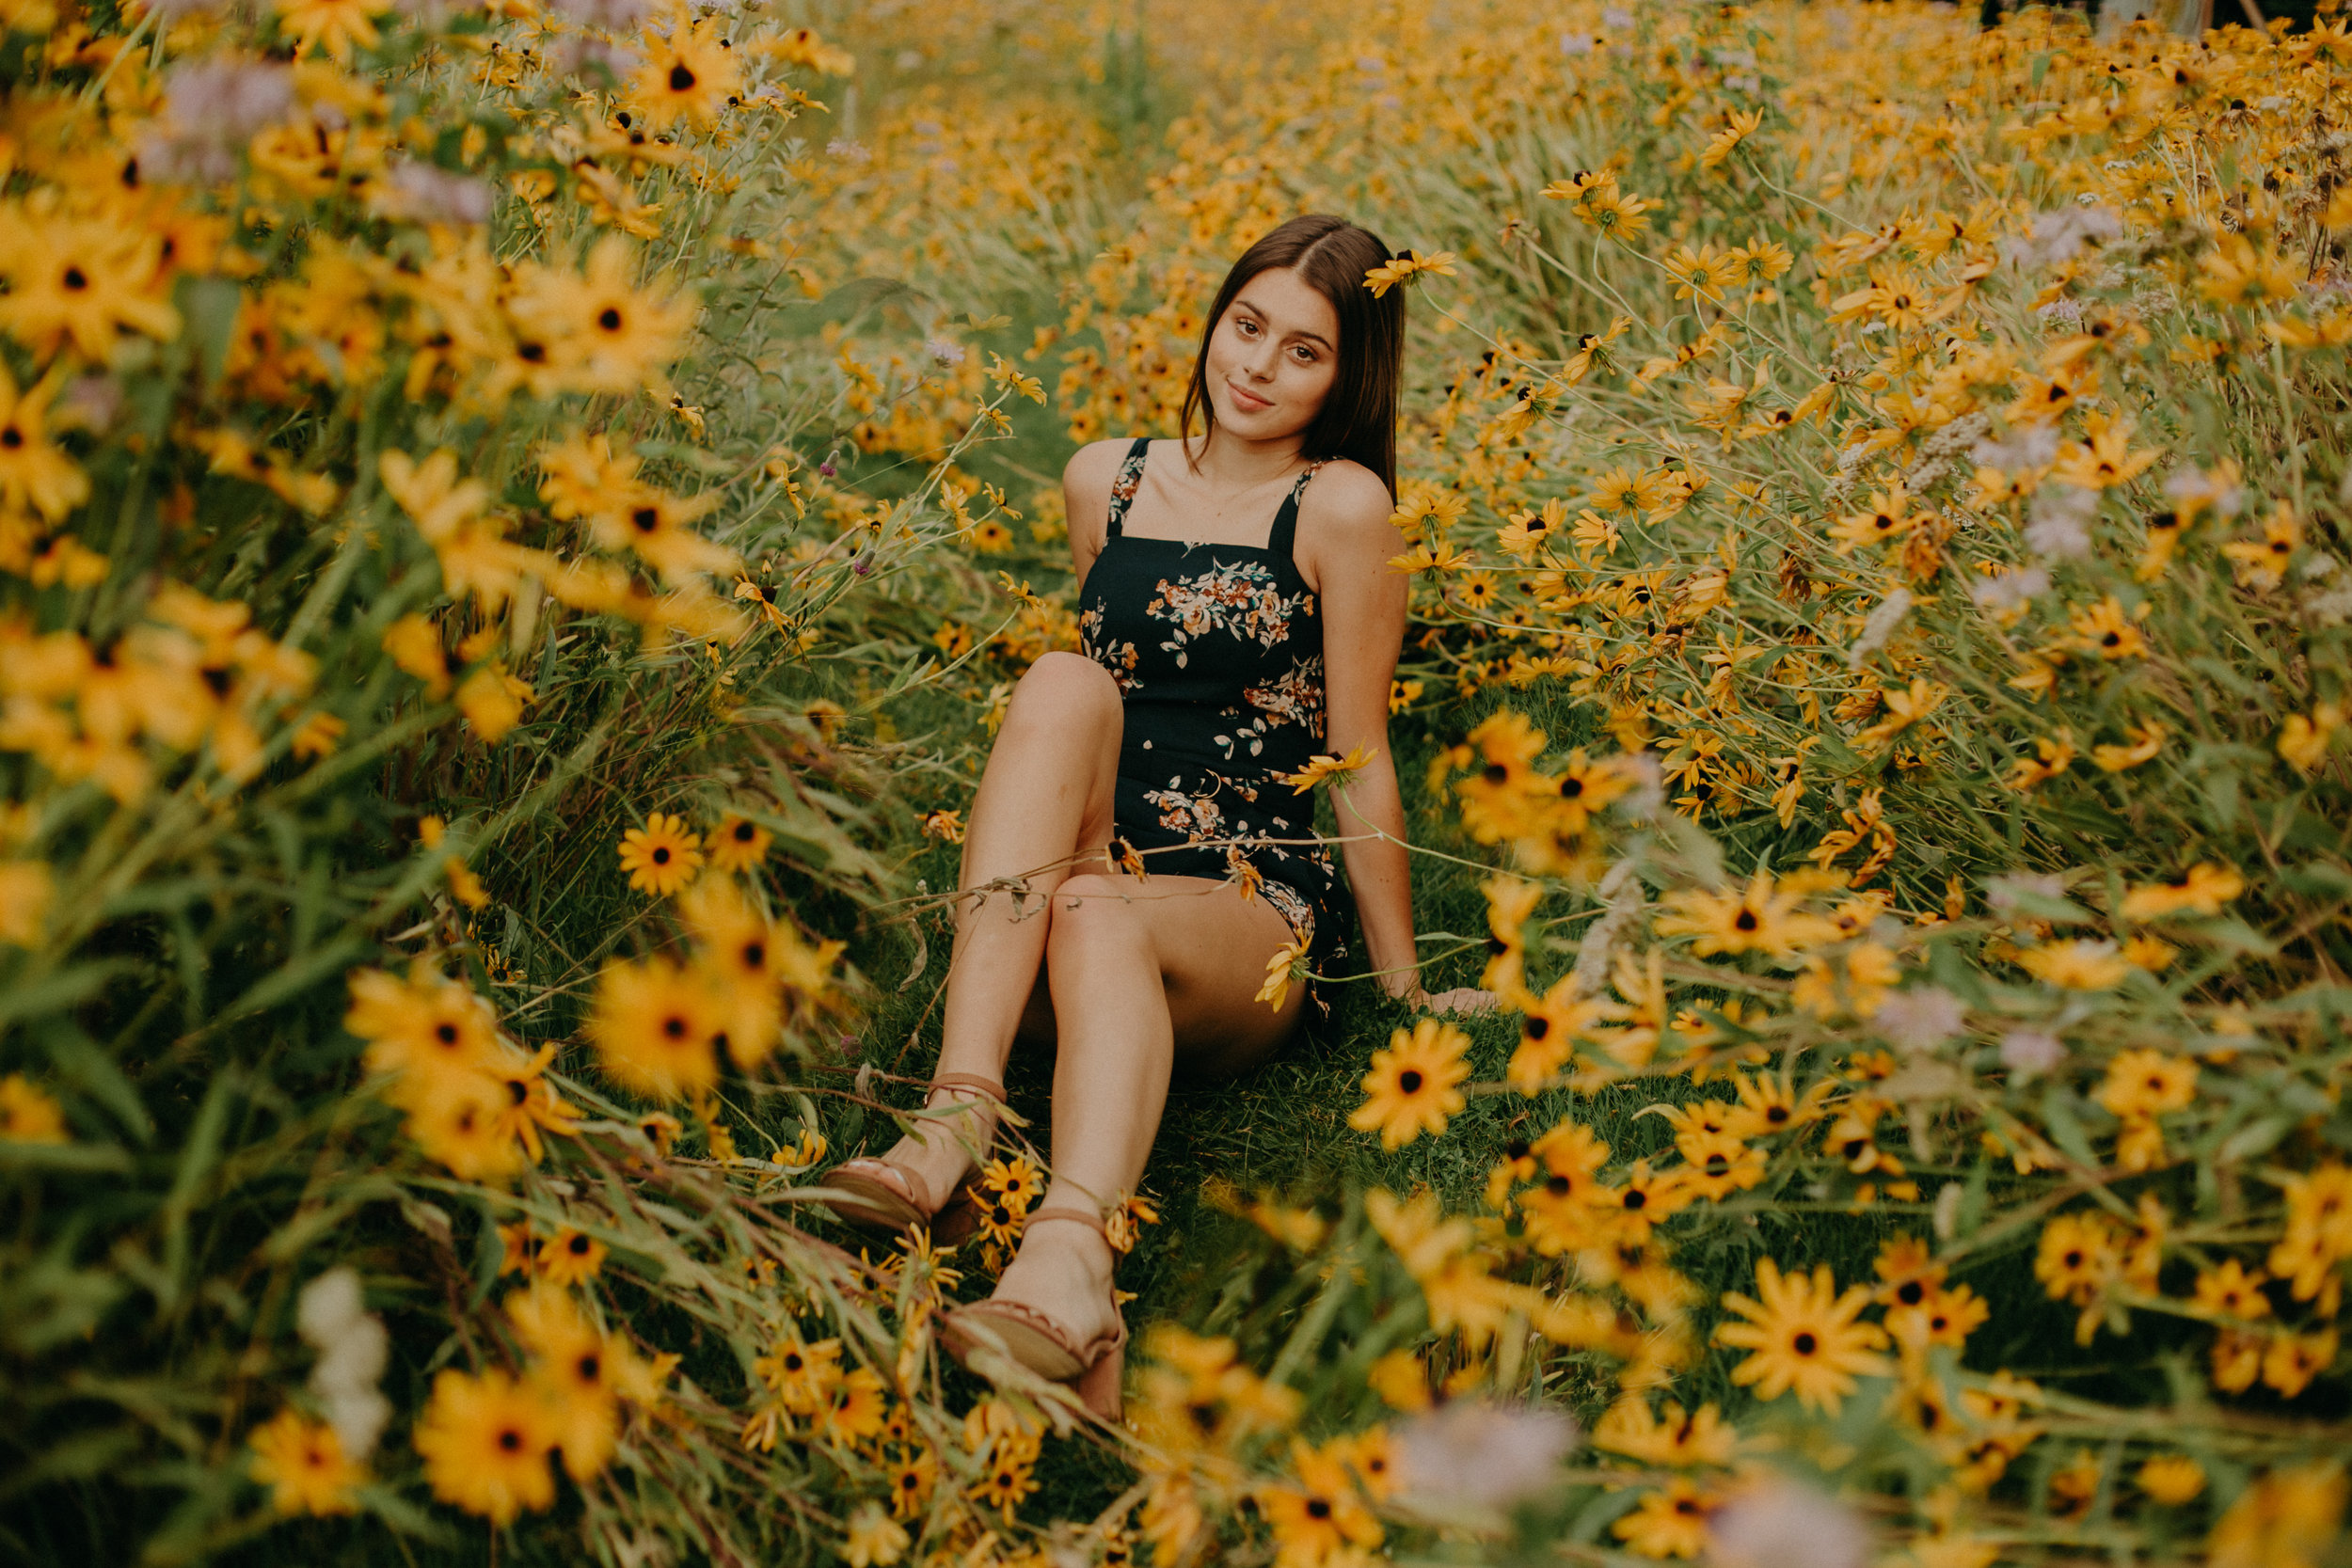 Andrea Wagner Photography captures epic moments in a bright yellow daisy field in Stillwater MN during senior photo shoot